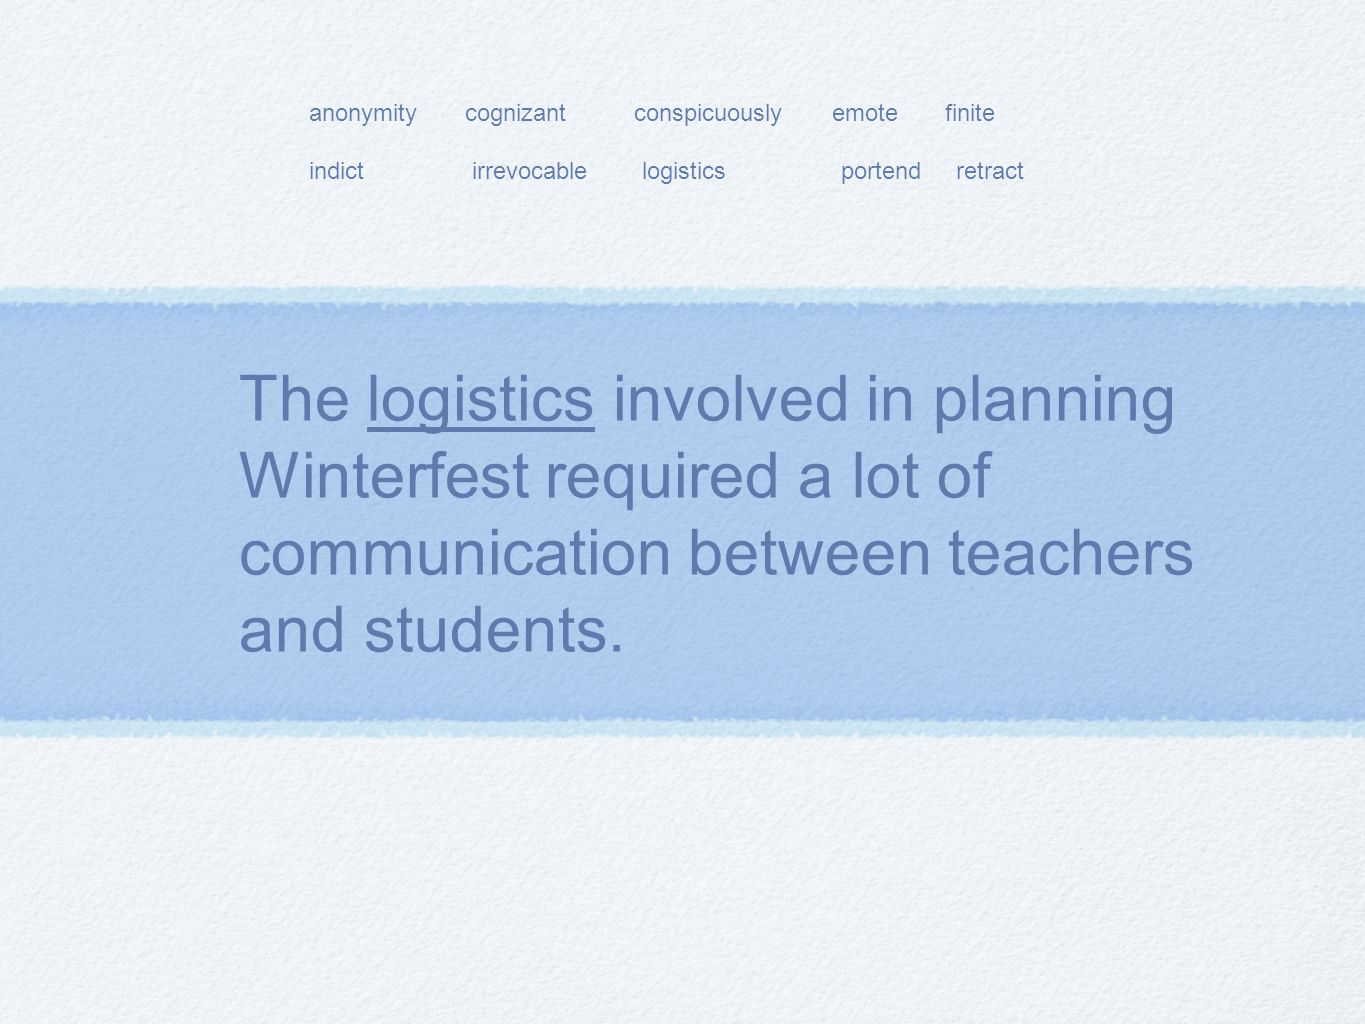 The logistics involved in planning Winterfest required a lot of communication between teachers and students.